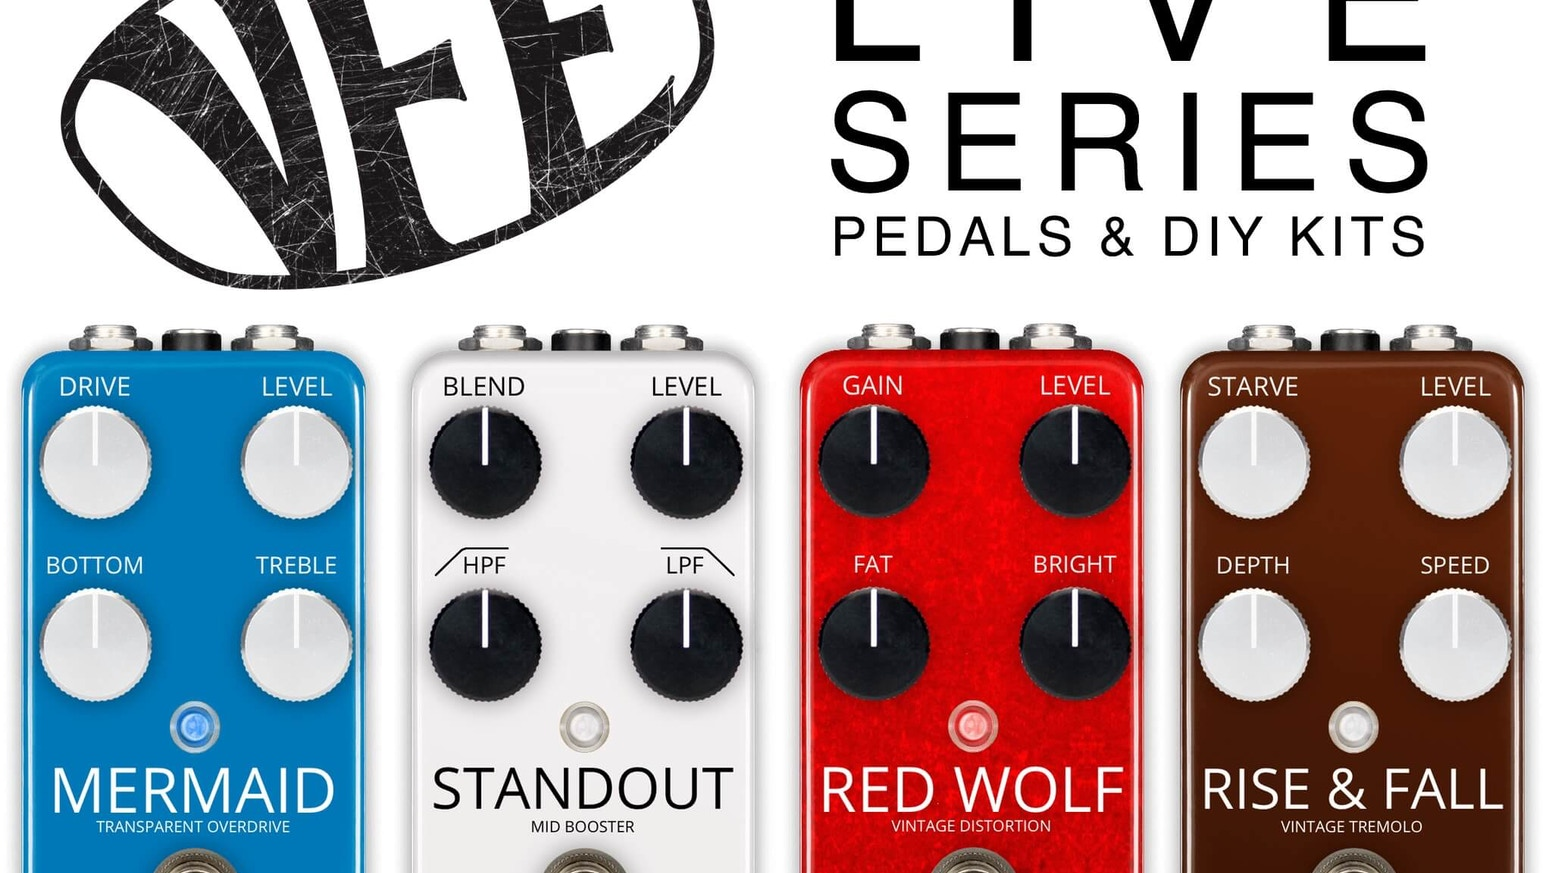 VFE Pedals Live Series - guitar pedals and DIY kits by Peter Rutter